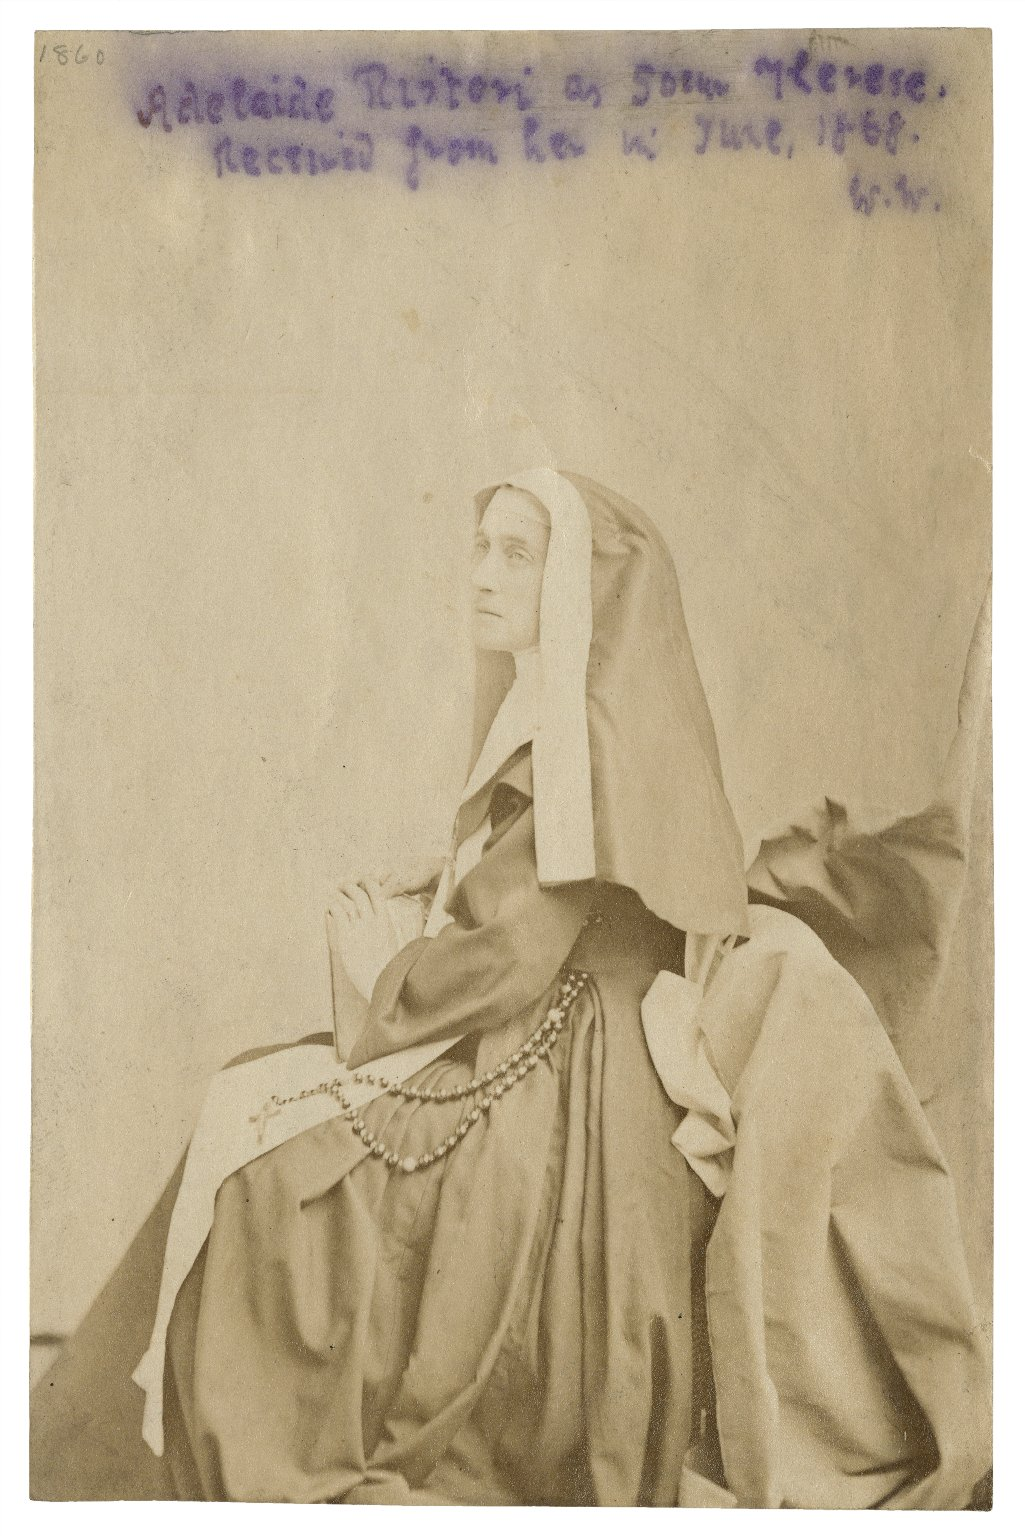 Adelaide Ristori as Soeur Therese [graphic].